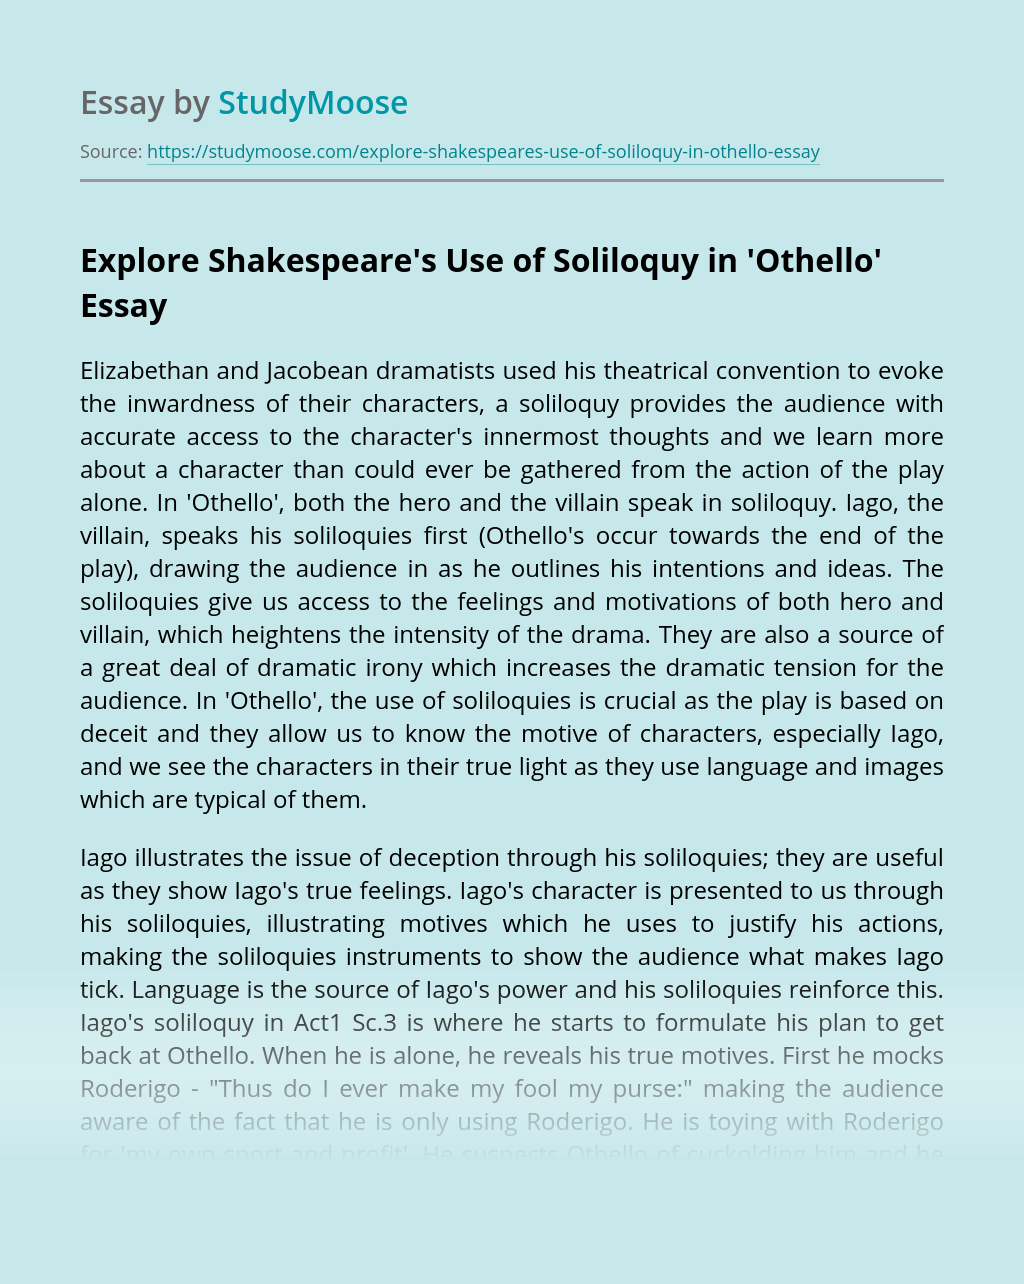 Explore Shakespeare's Use of Soliloquy in'Othello'